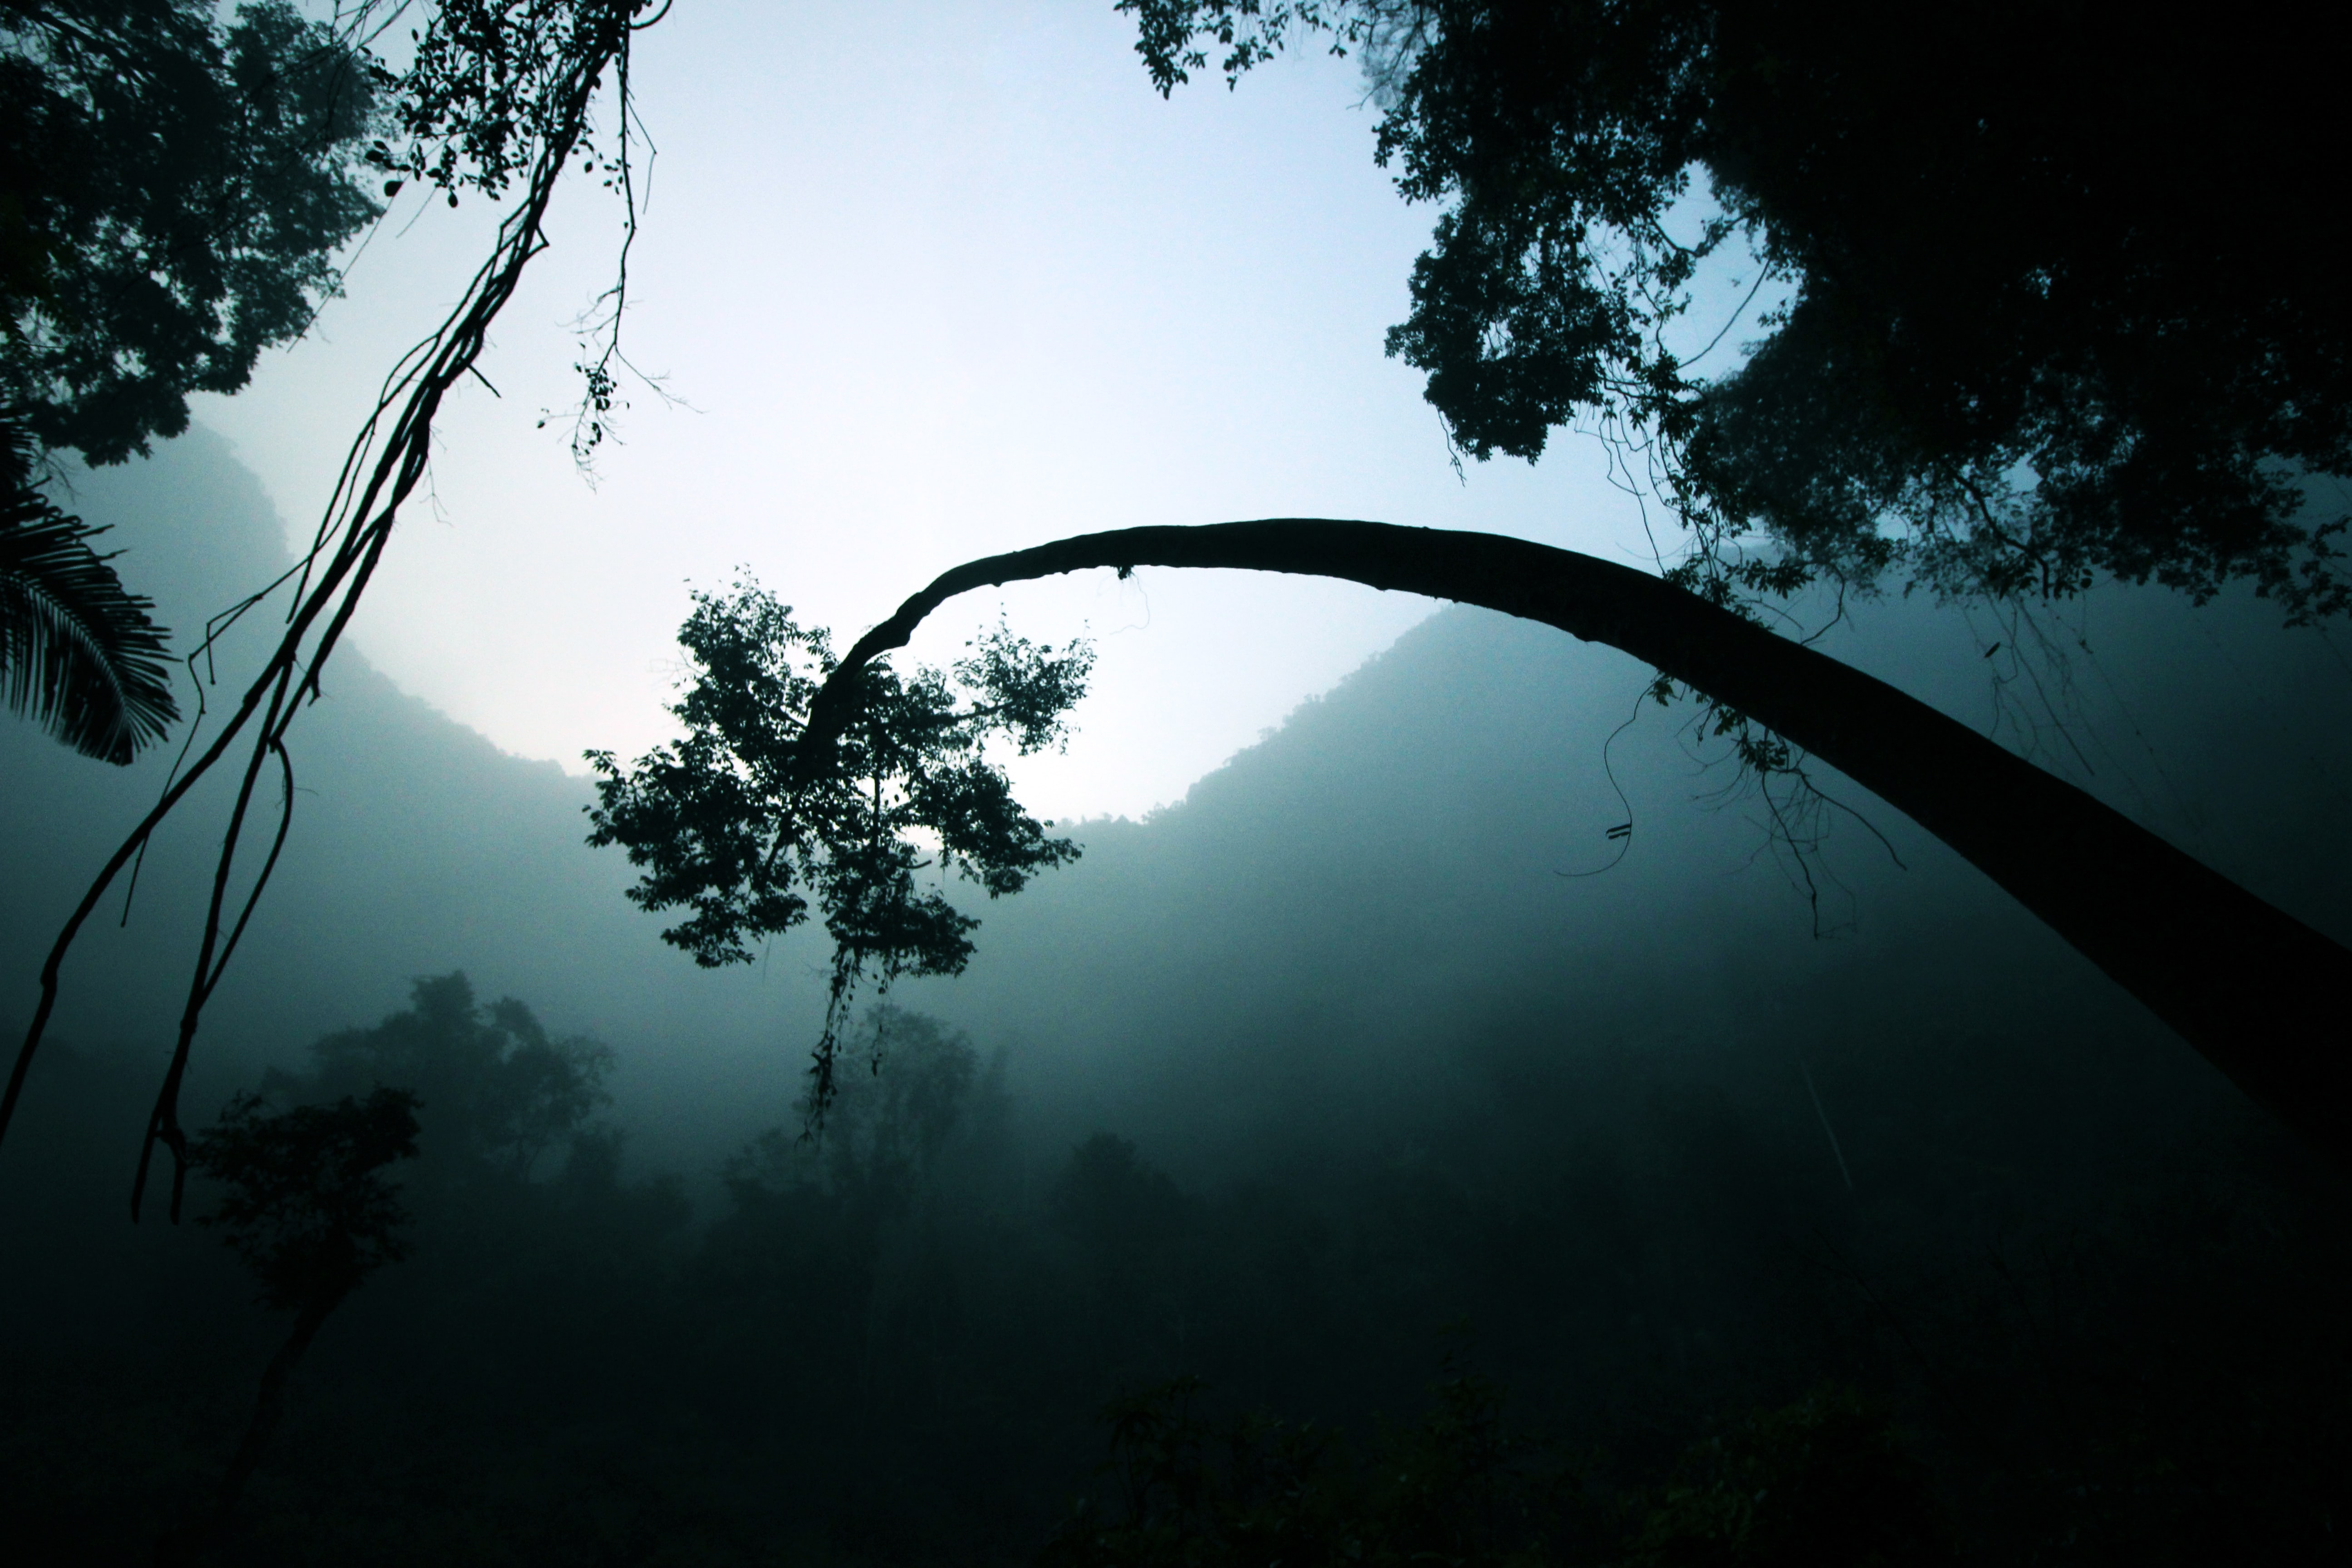 A bent tree in a dark and humid rainforest in Vietnam